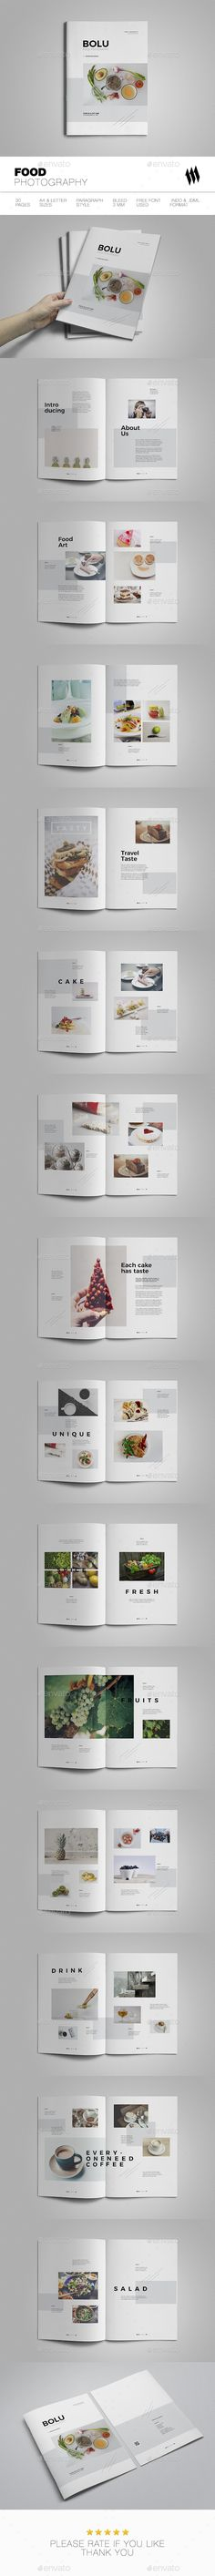 Pin by 진주 배 on 편집디자인 Pinterest Food design, Vegetables - food brochure